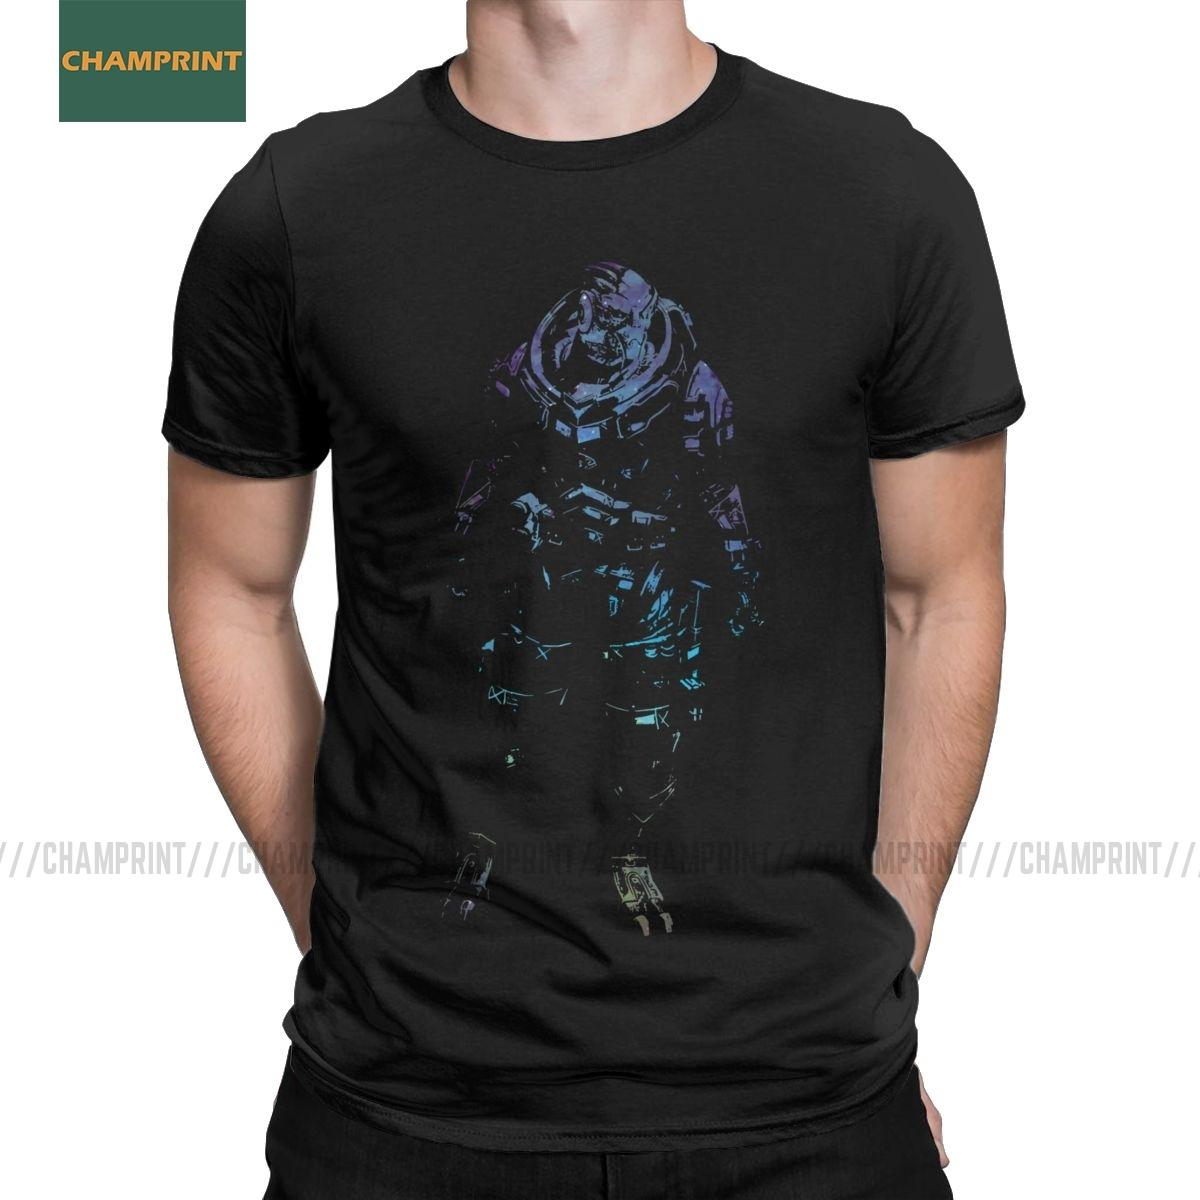 Mass Effect Гаррус Space Gradient Men T Shirt Shepard Commander Bioware Рэкс Space Mordin Игра Tee с коротким рукавом футболки хлопок